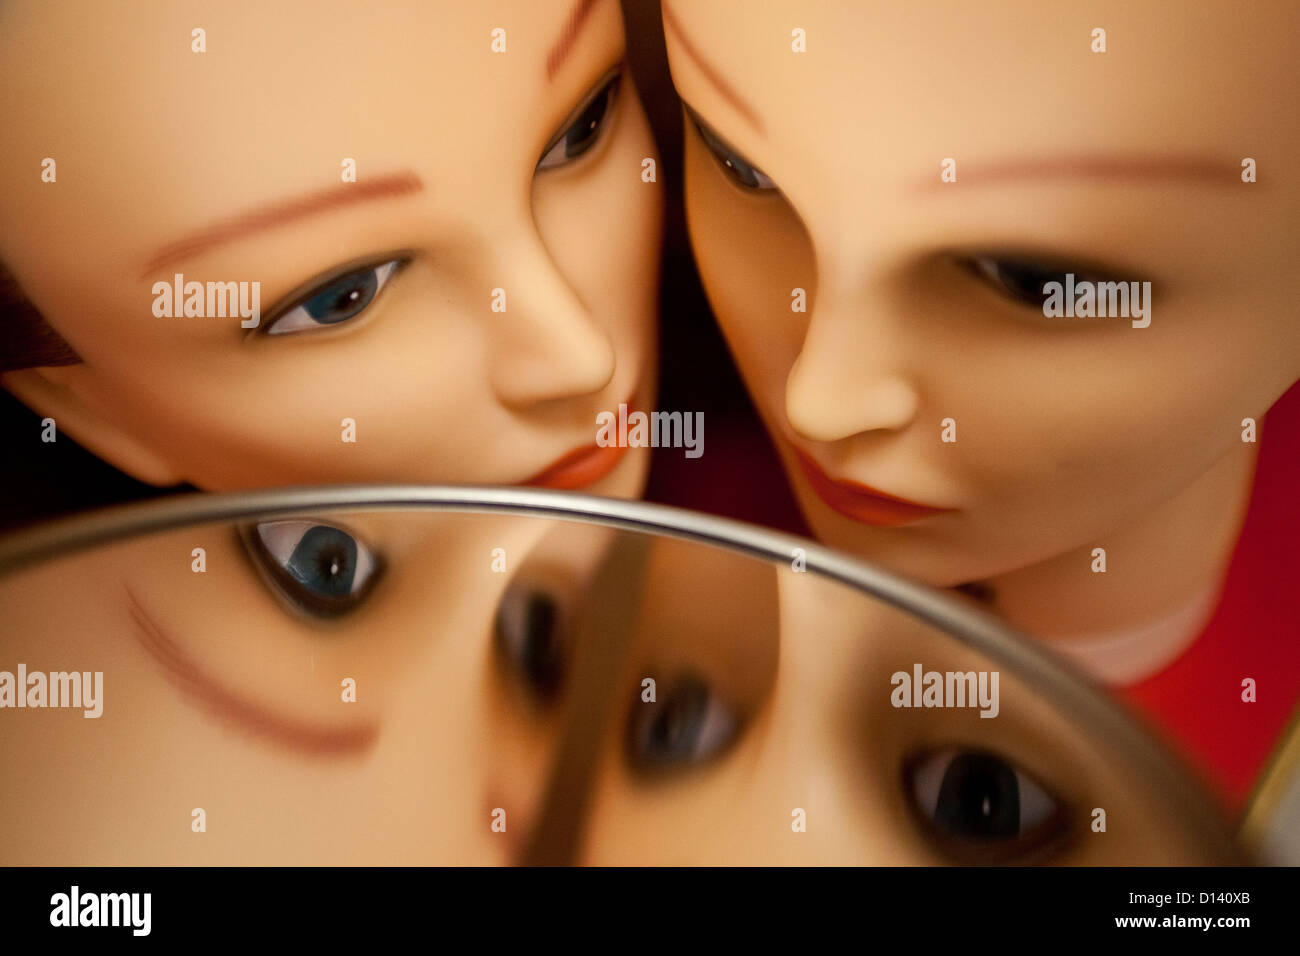 Mannequin heads - Stock Image